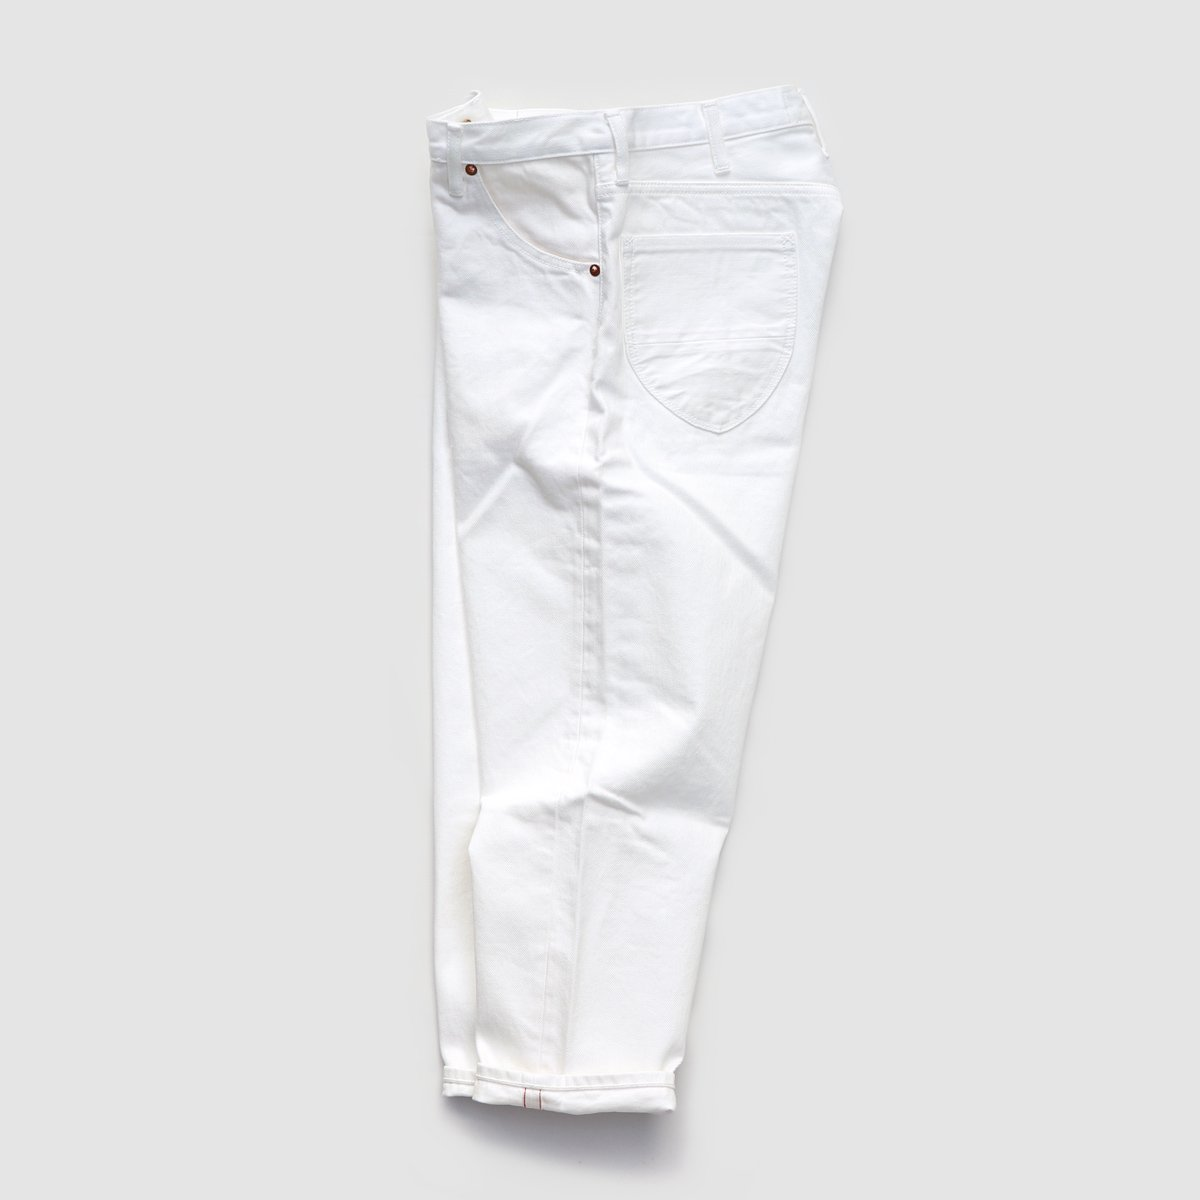 ALPHA DENIM ririzip ver. 詳細画像1